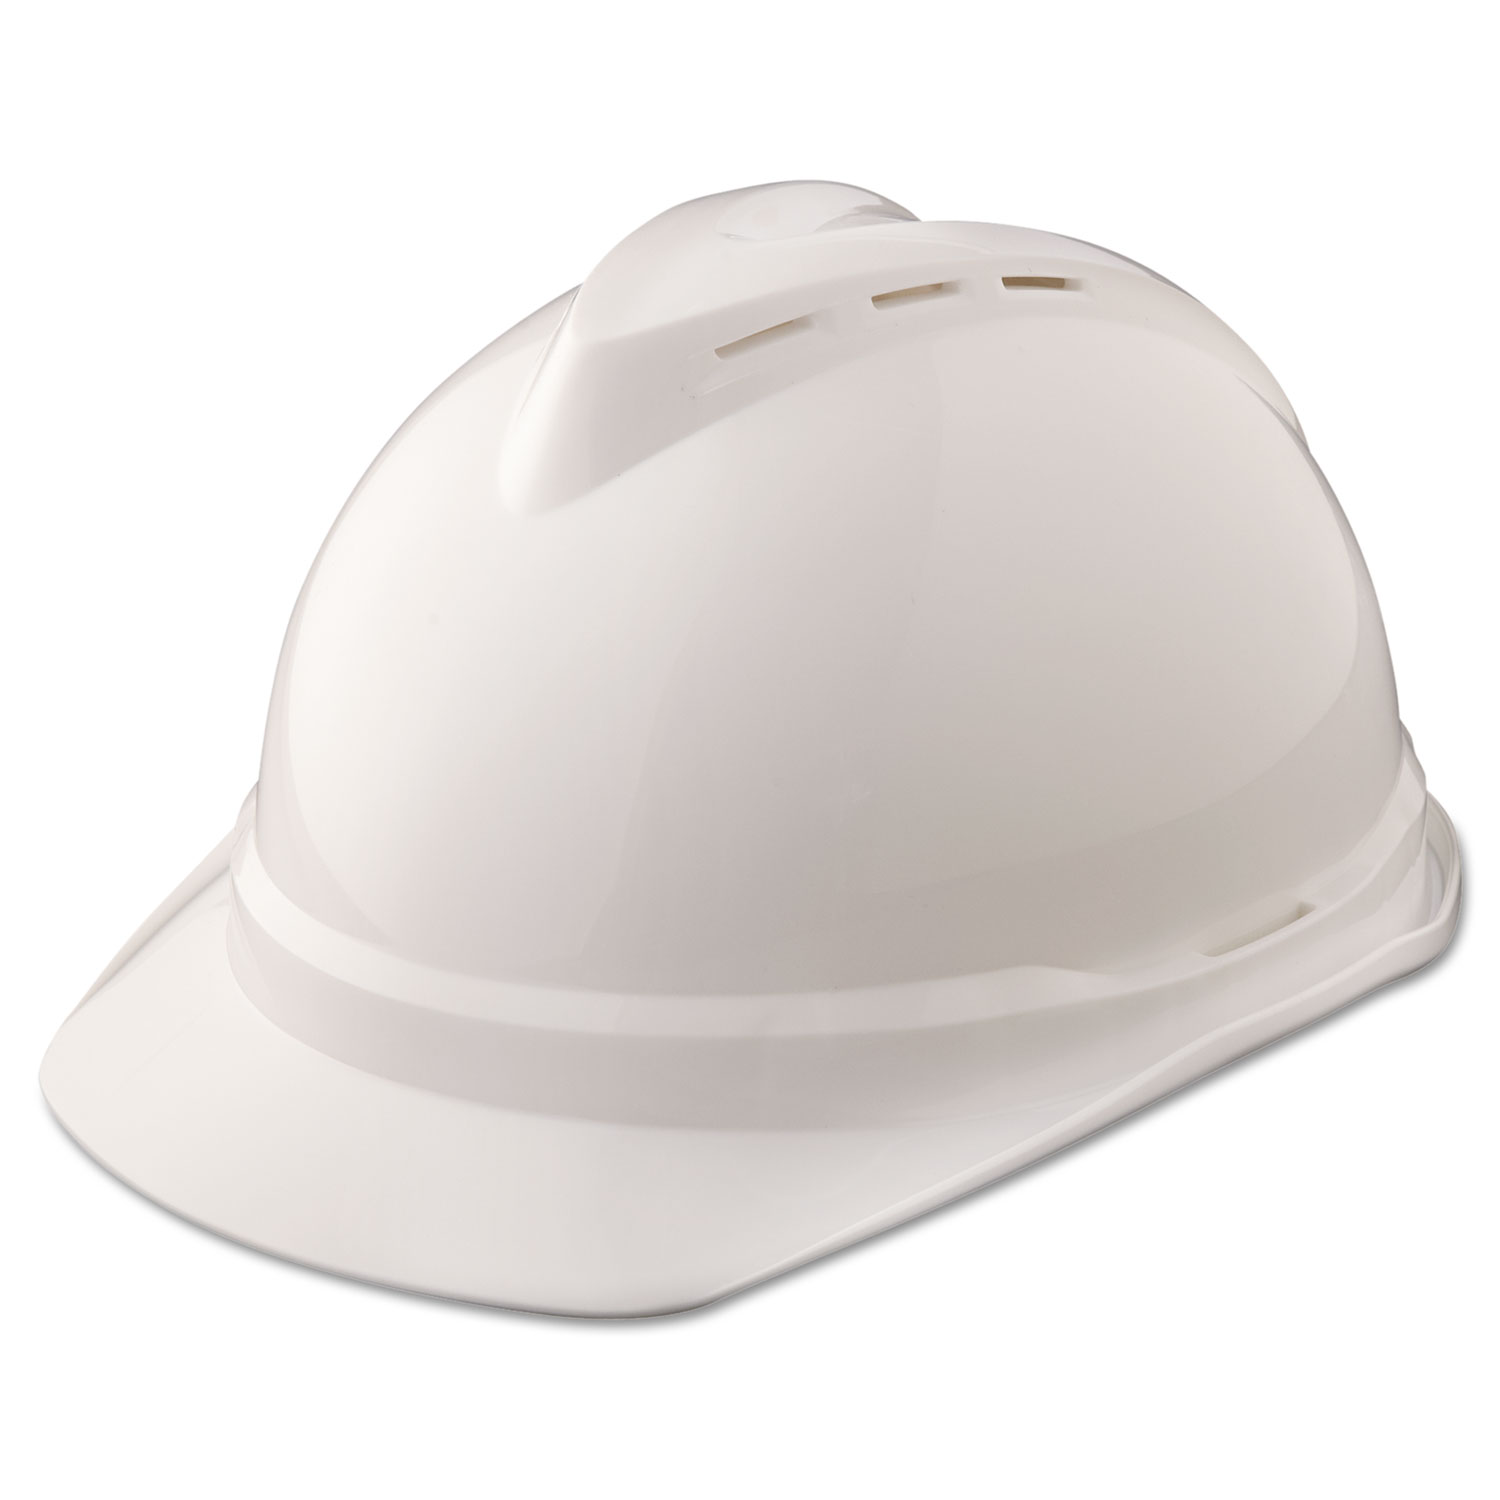 V-Gard 500 Protective Cap Vented, 4-Point Suspension, White